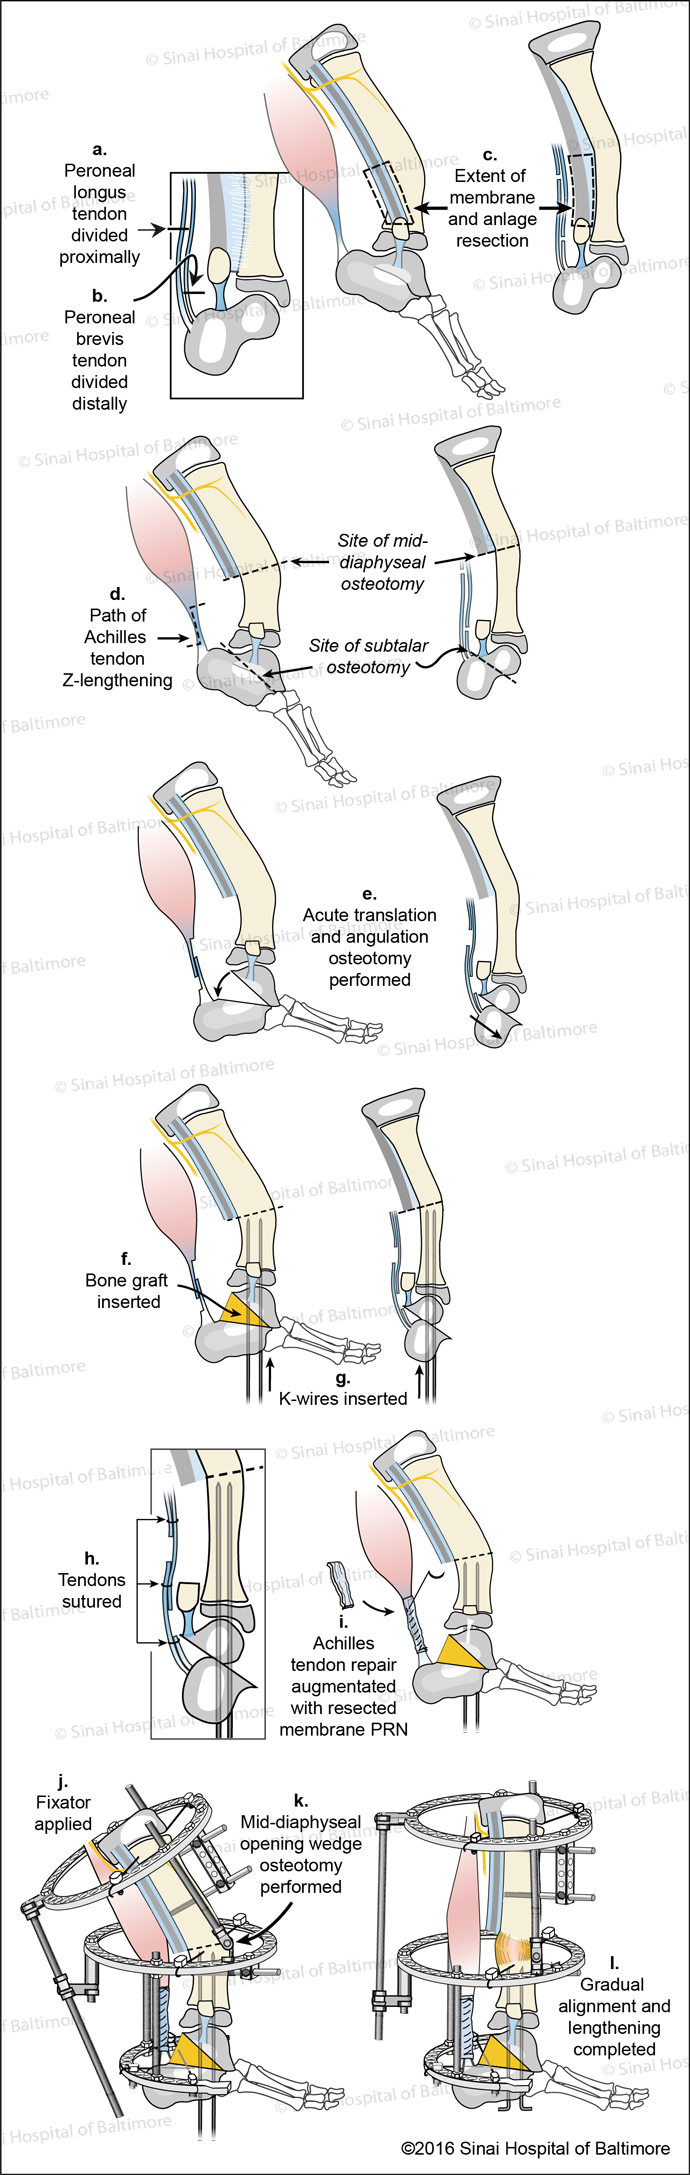 Super-ankle Surgical Technique for Subtalar Type Fibular Hemimelia (Paley Type 3B) Fig. A, Peroneal longus tendon is divided proximally. B, Peroneal brevis tendon is divided distally. C, The extent of the membrane and anlage resection is identified. D, The path of the Achilles tendon Z-lengthening and site of mid-diaphyseal and subtalar osteotomies are identified. E, Acute translation and angulation osteotomy are performed. F, Bone graft is inserted; G, K-wires are inserted; H, Tendons are sutured; I, Achilles tendon repair is augmented with resected membrane as needed; J, The external fixator is applied; K, A mid-diaphyseal opening wedge osteotomy is performed; L, Gradual alignment and lengthening is completed.